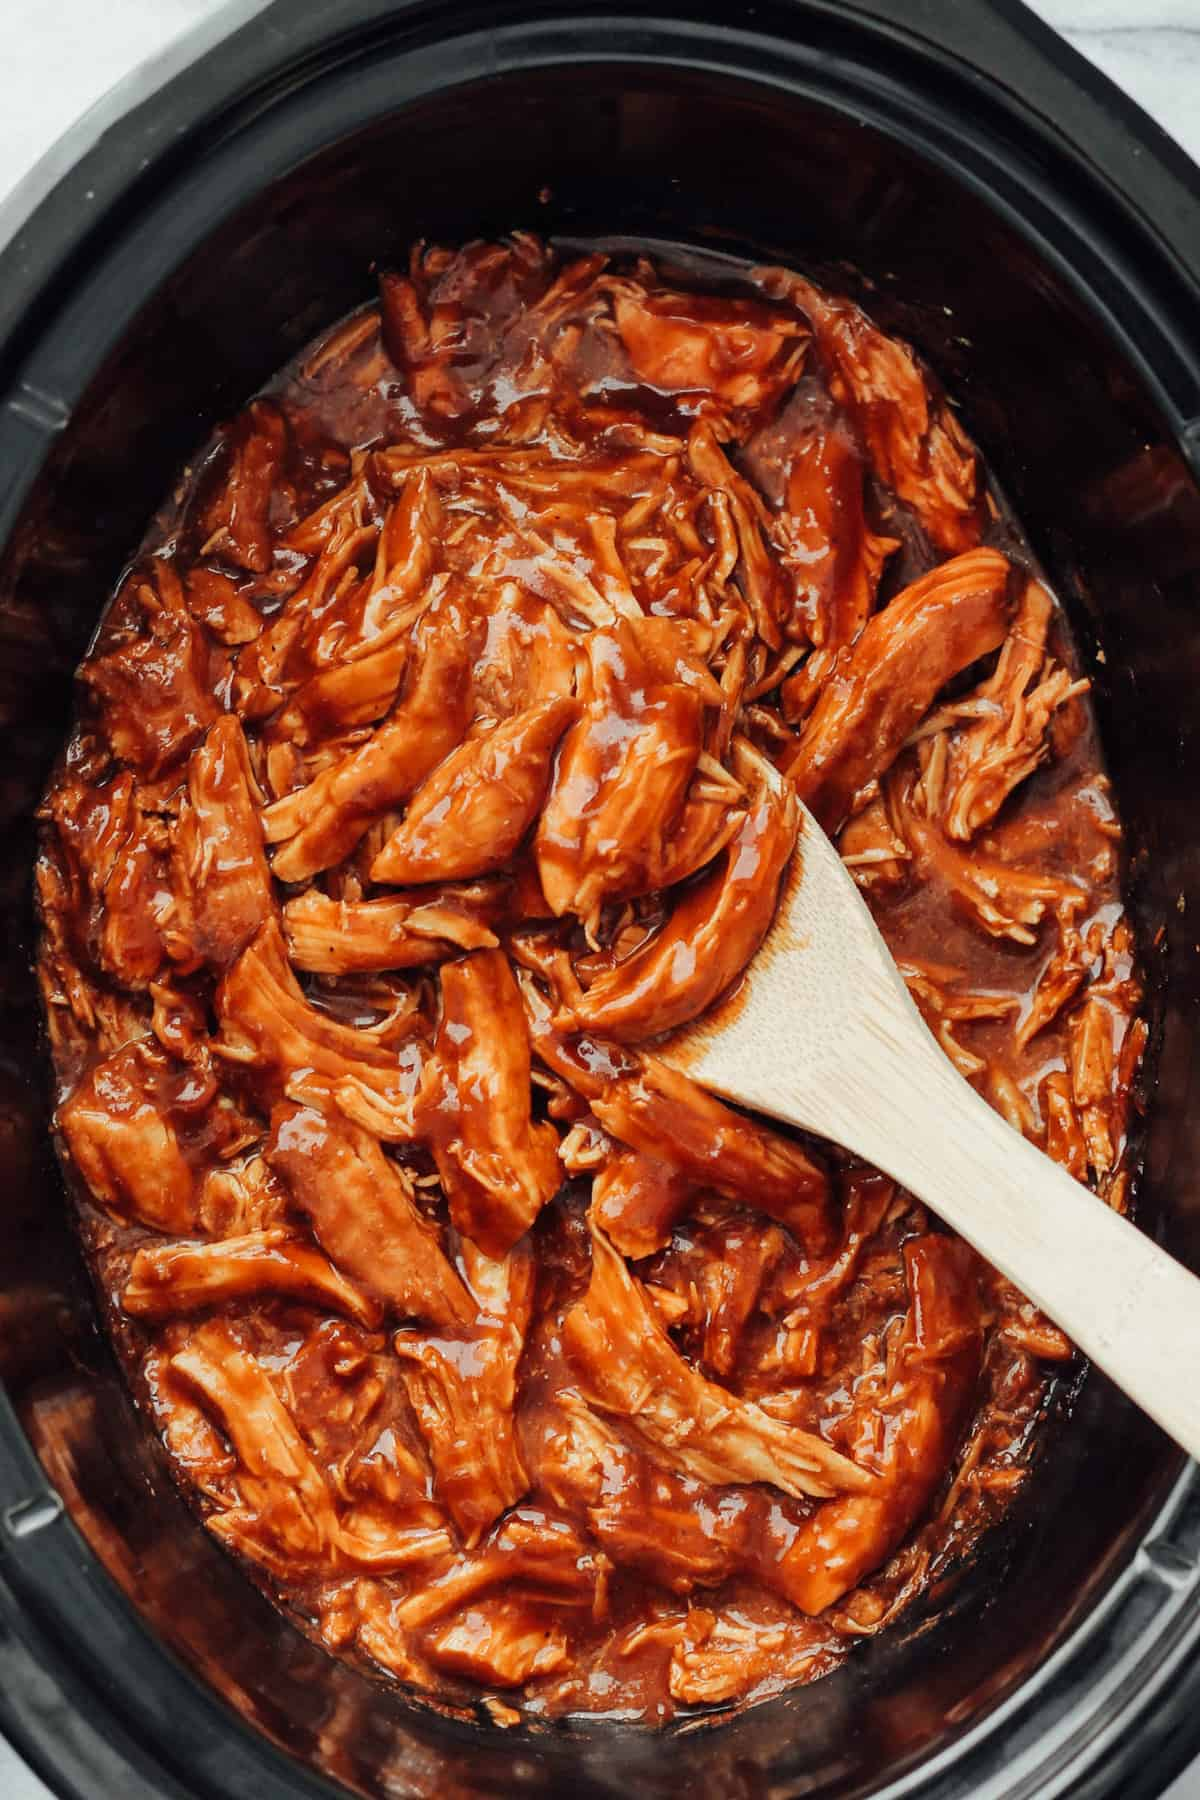 Crockpot Bbq Chicken Pulled Chicken Easy Chicken Recipes Video